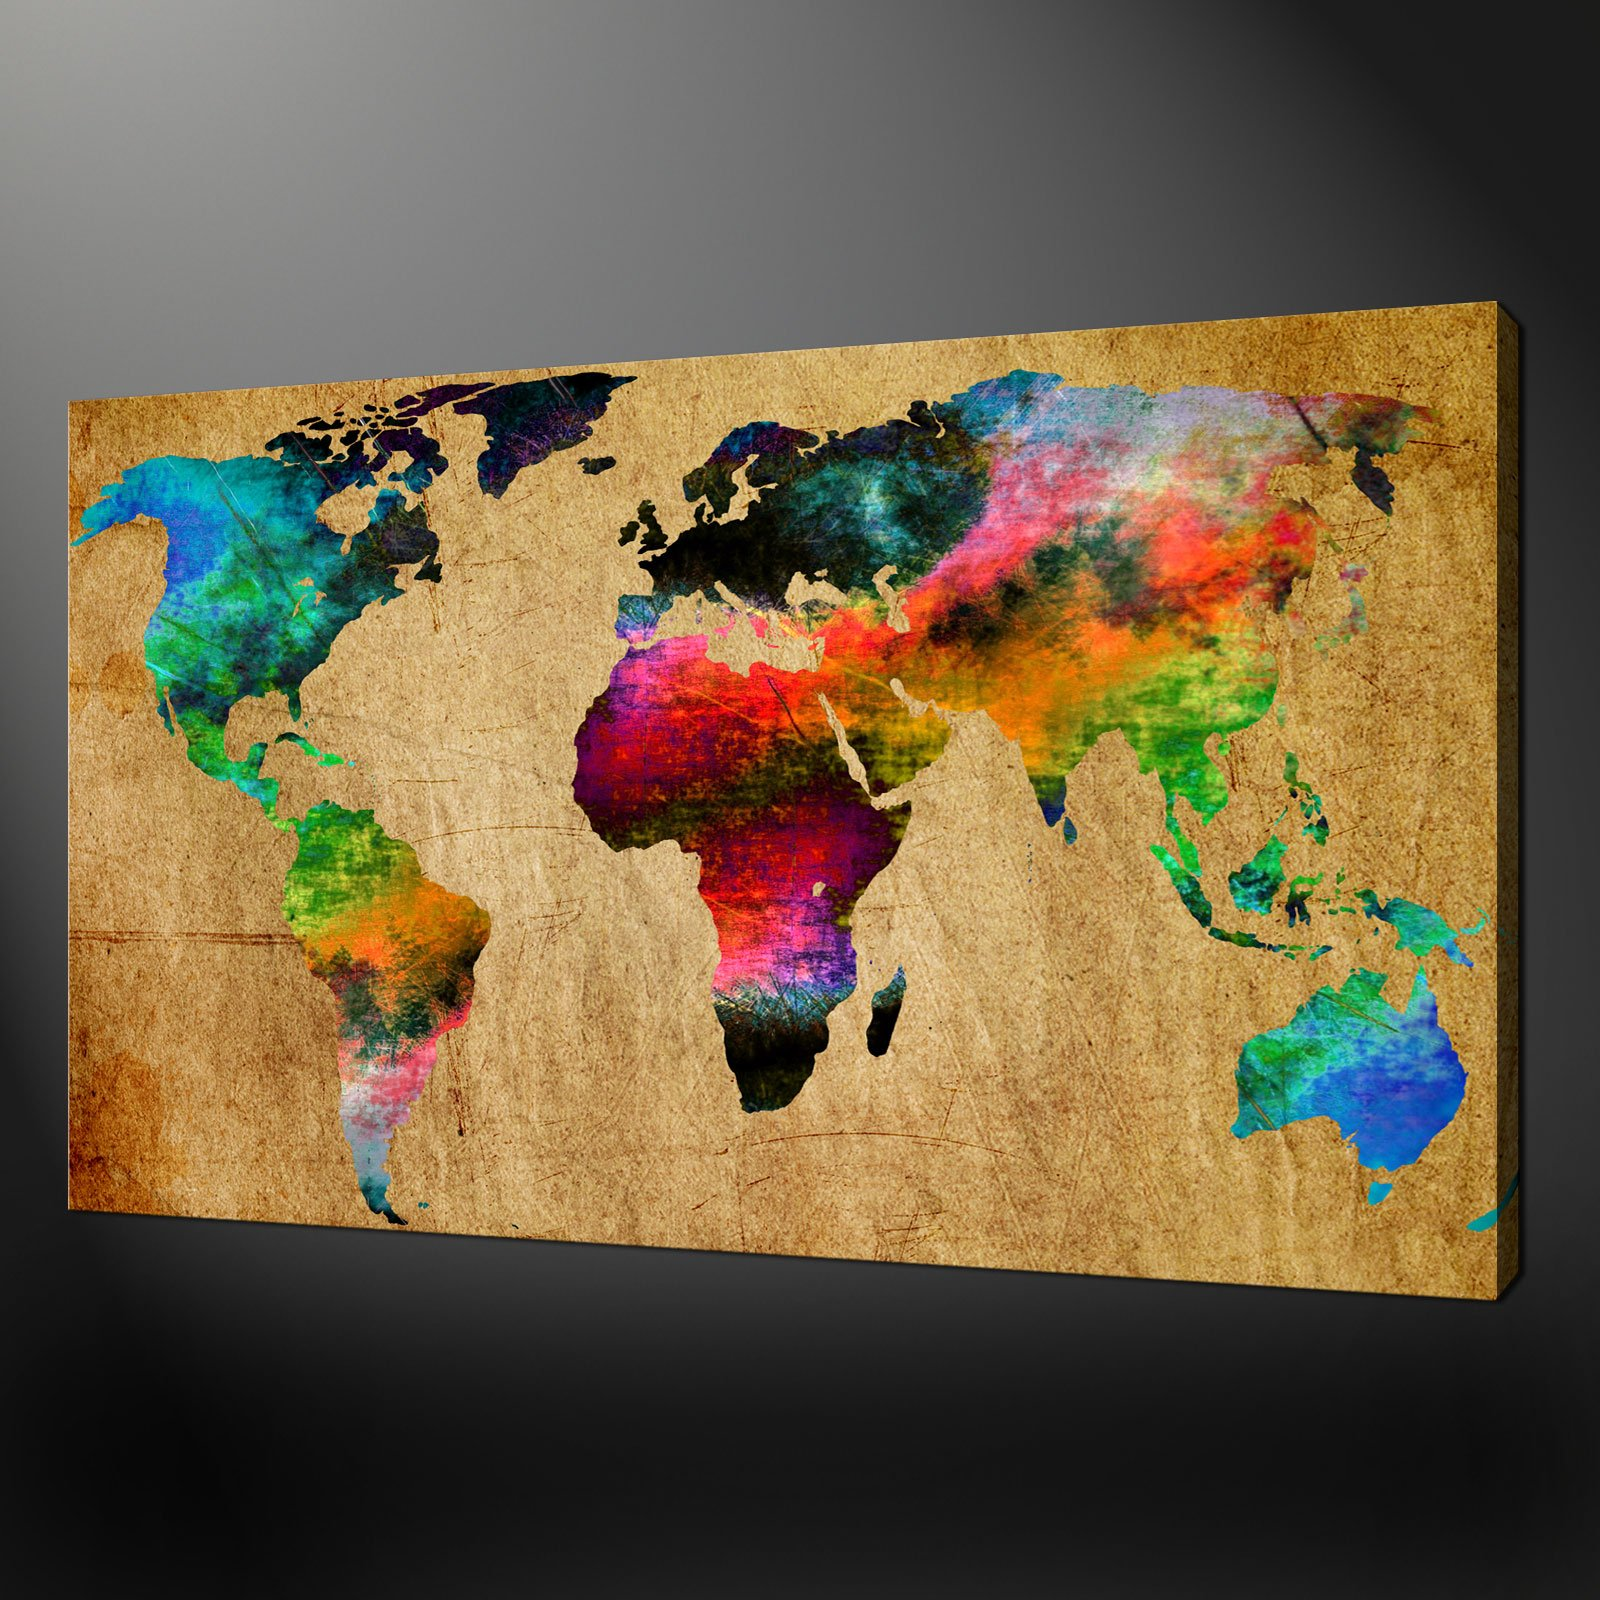 abstract world map canvas wall art pictures print. world map canvas wall art picture print